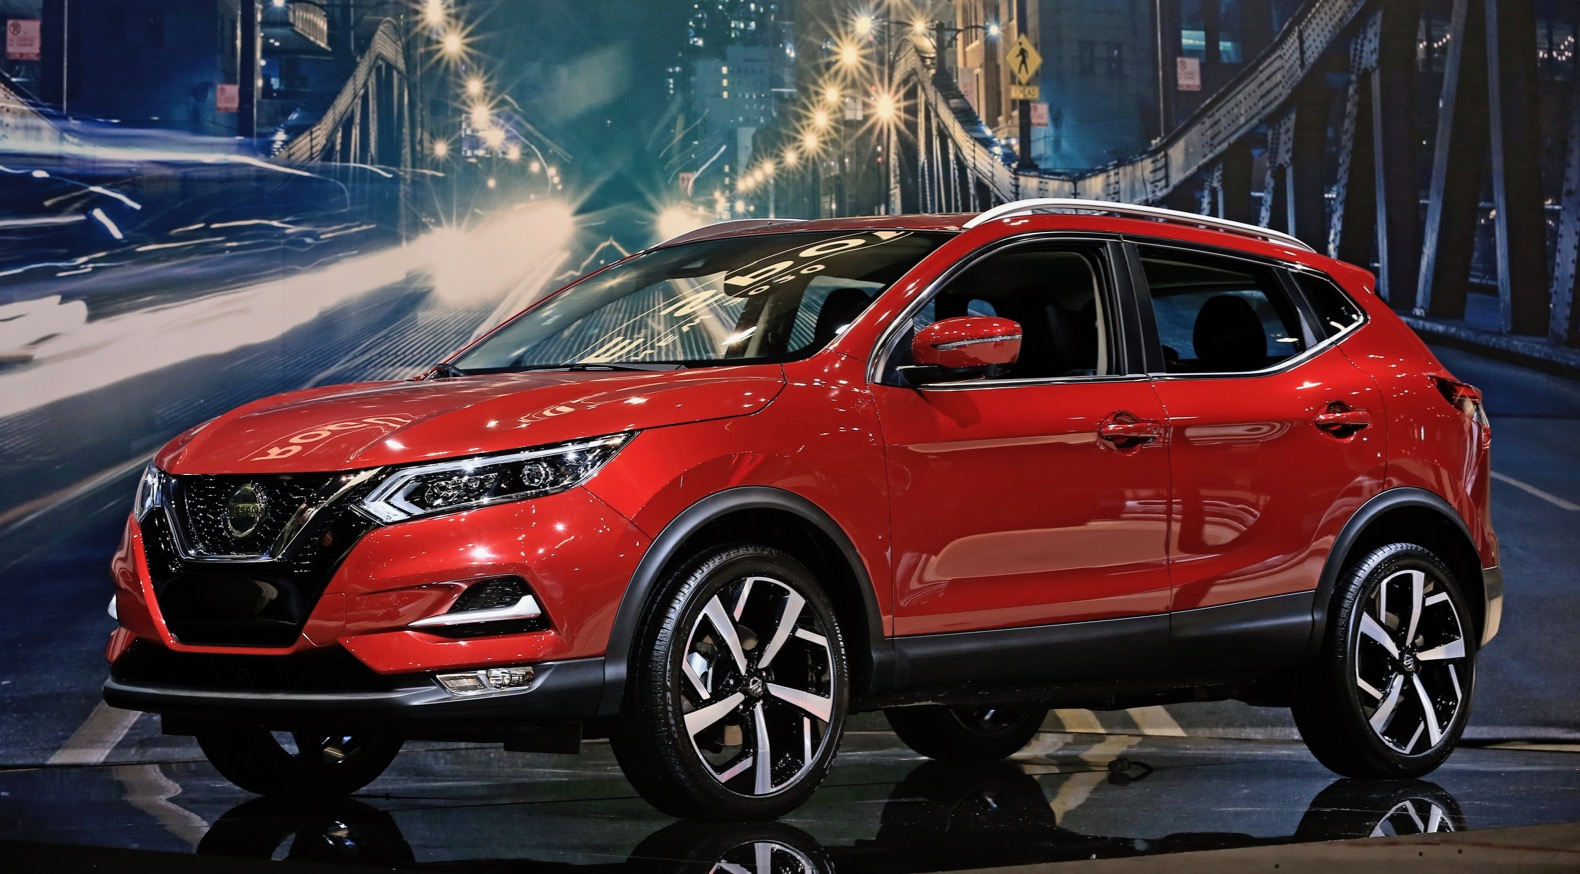 2020 nissan rogue sport starts at $24,335 | the torque report